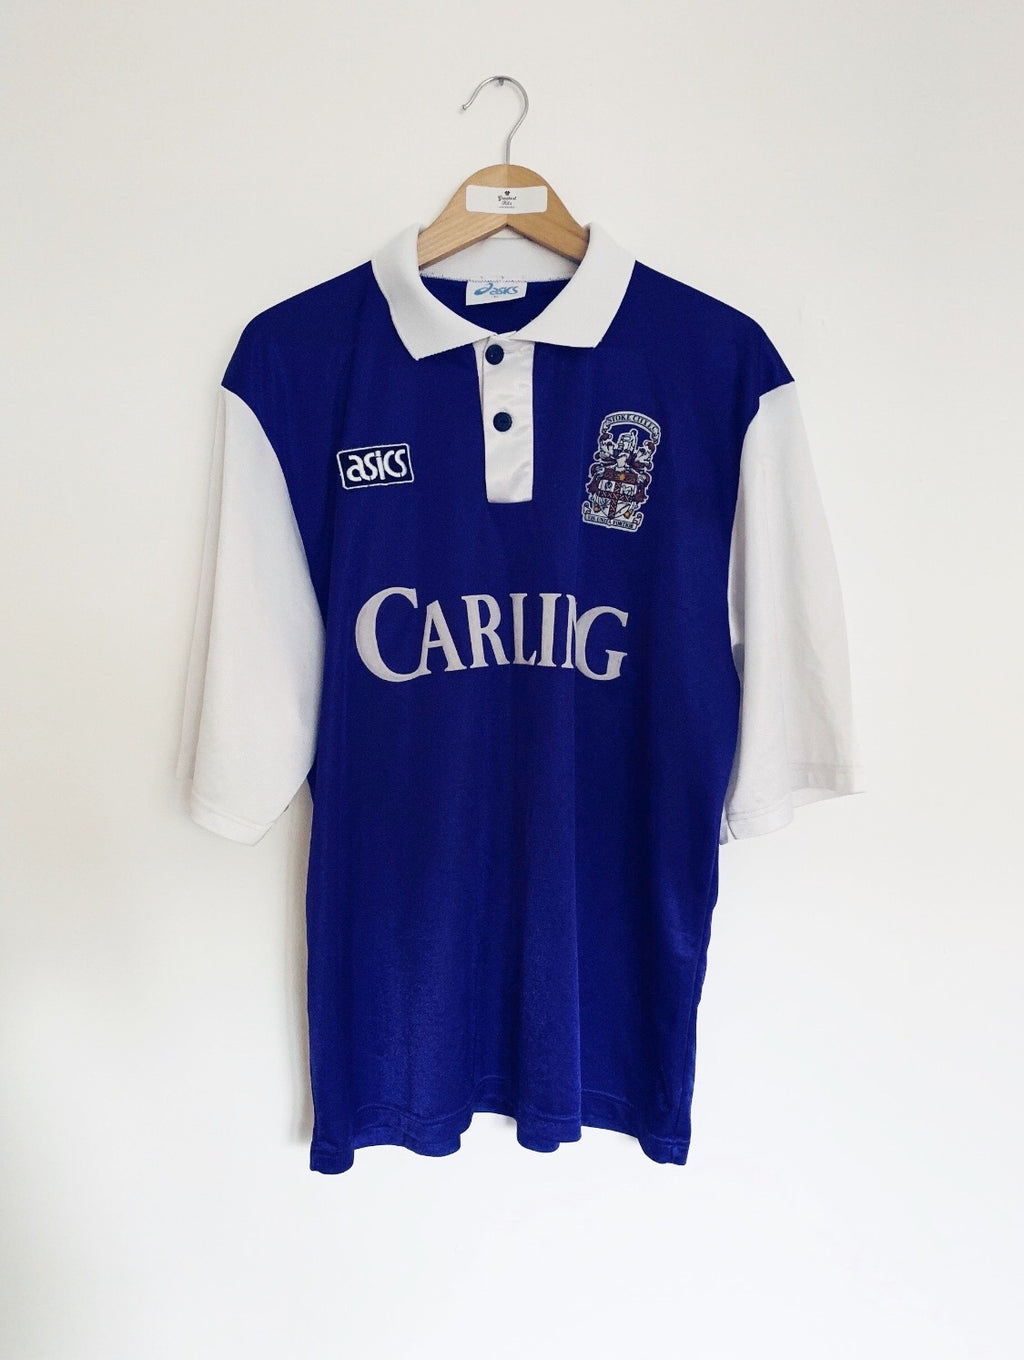 1993/94 Stoke City Away Shirt (XL) 8/10